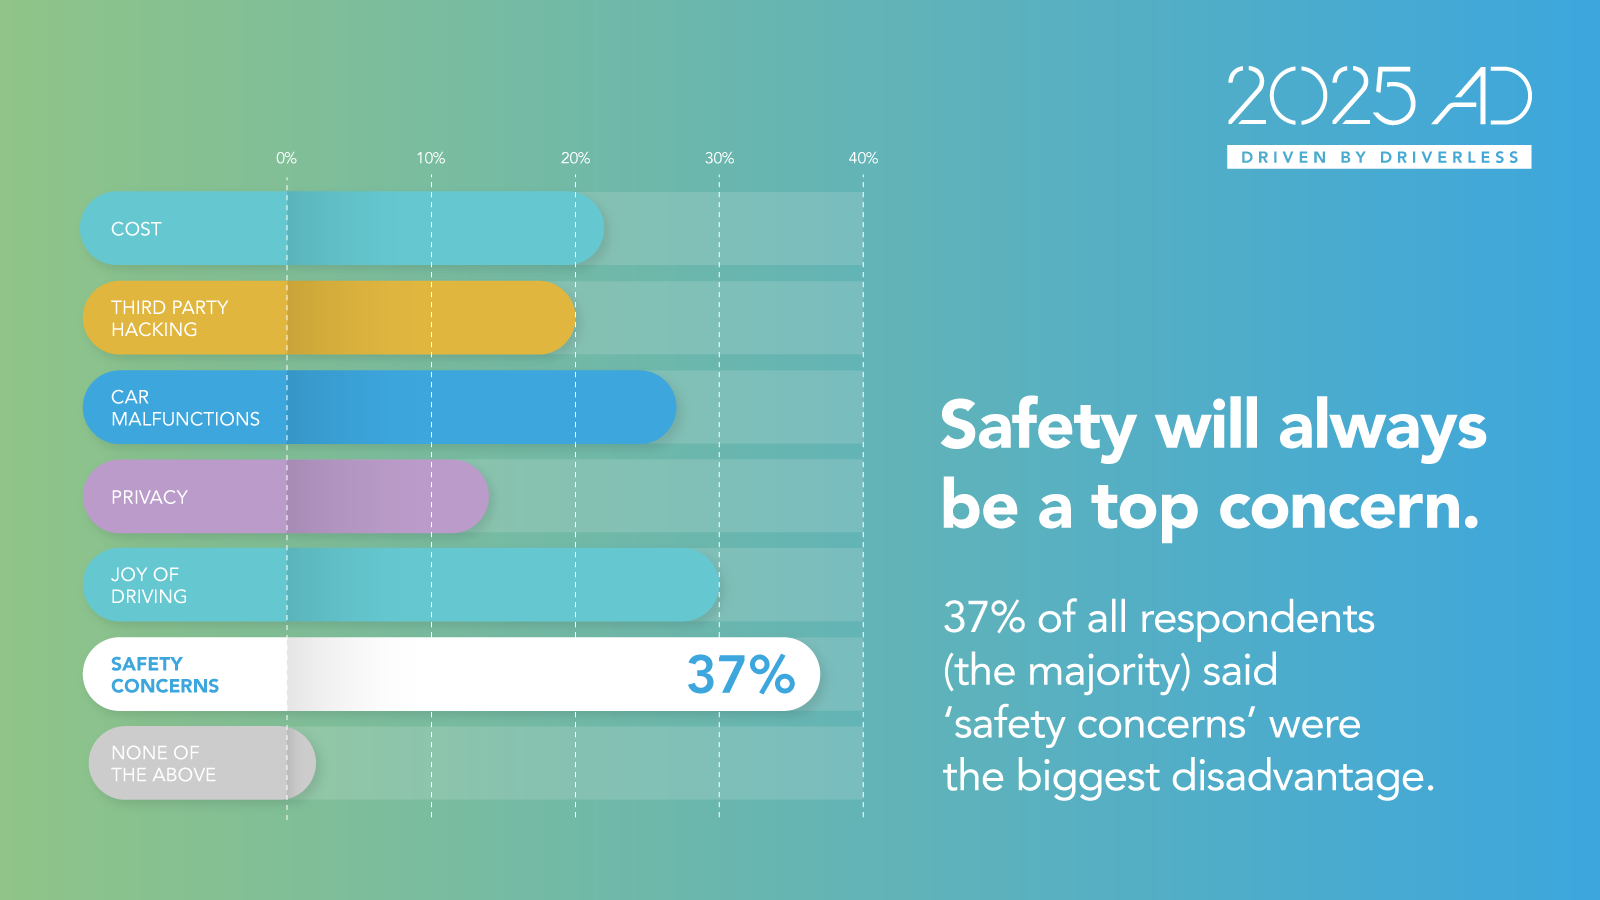 Safety is a top concern 2025AD